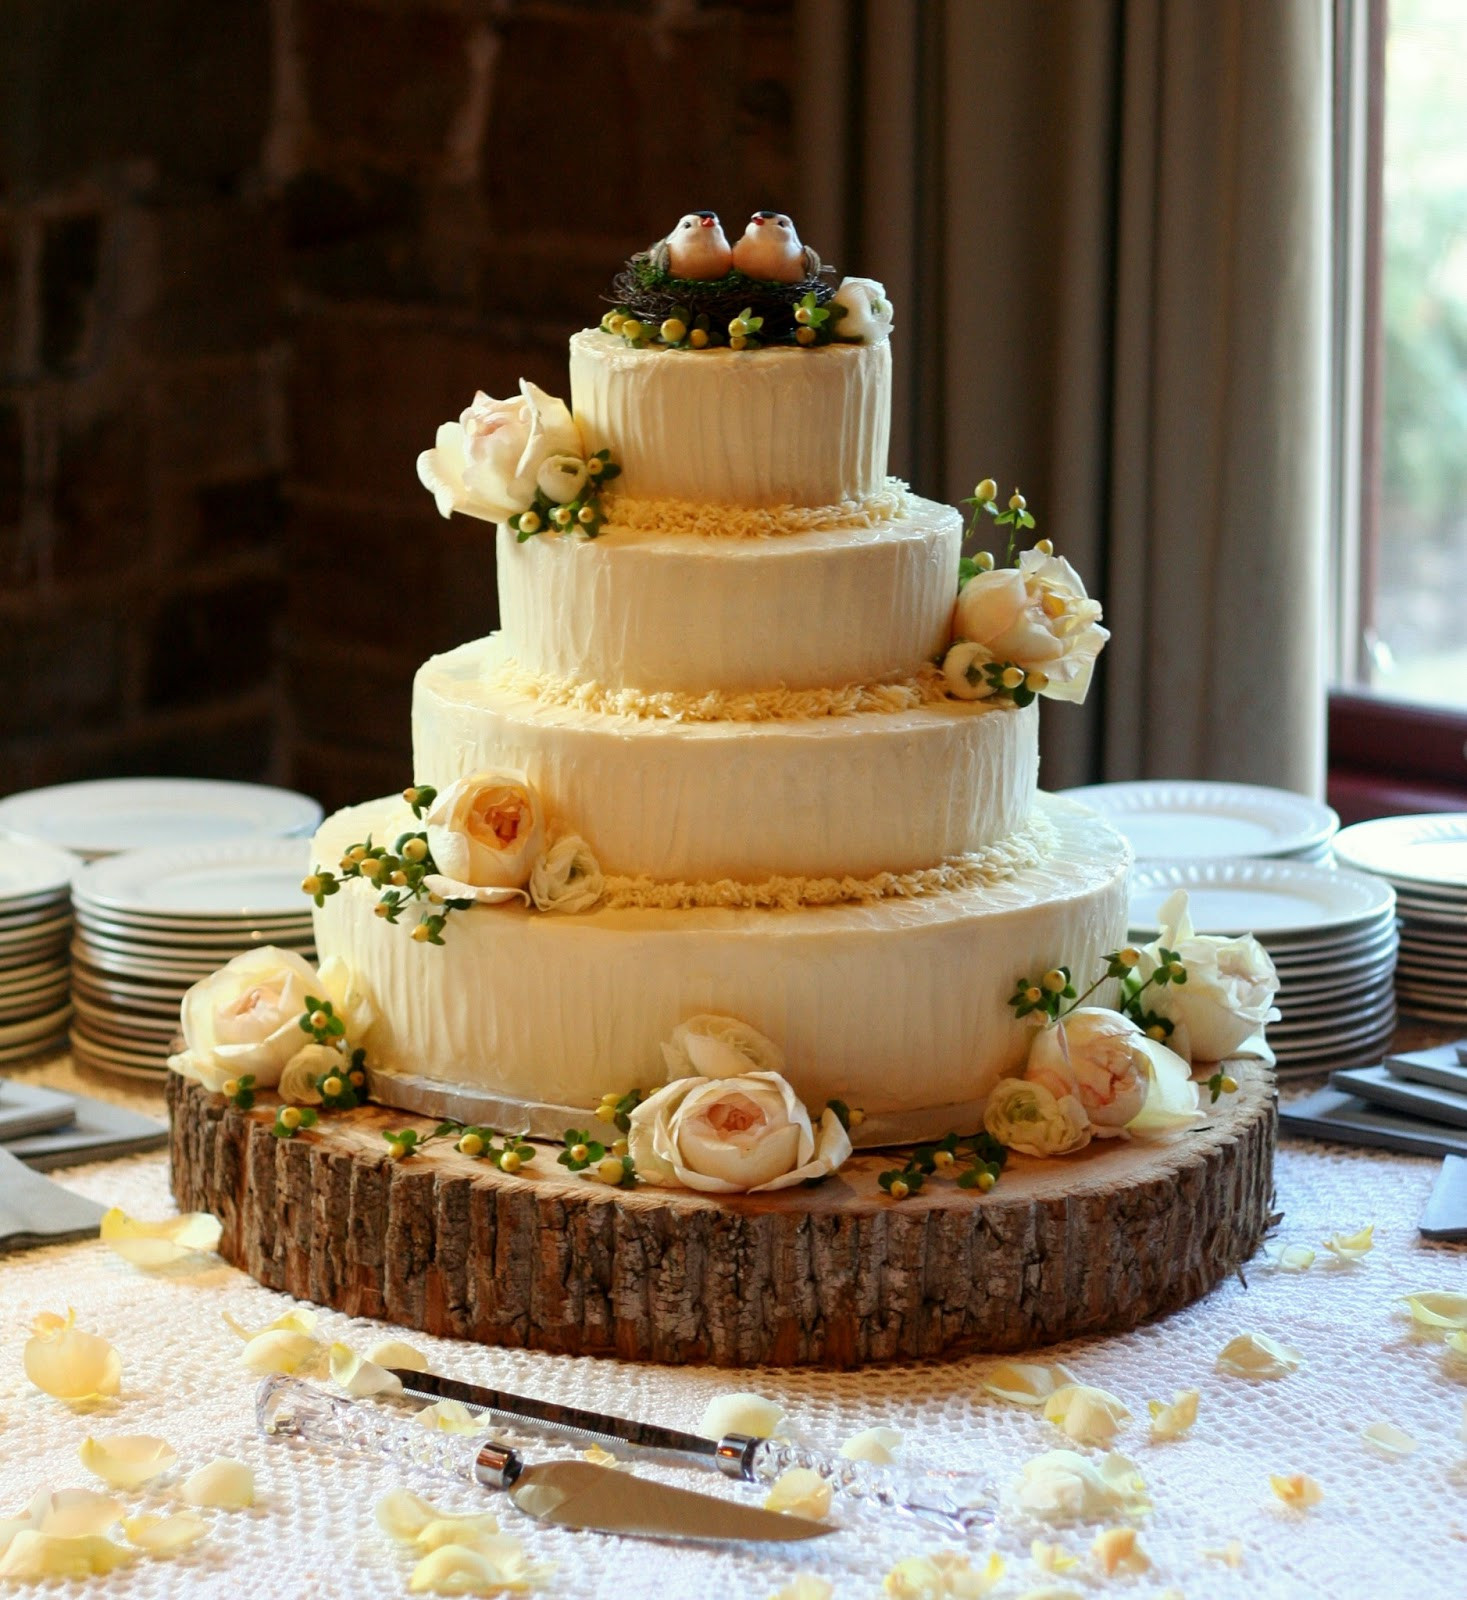 Wedding Cakes Rustic  6 Stunning Rustic Wedding Cake Ideas Wedding Cakes